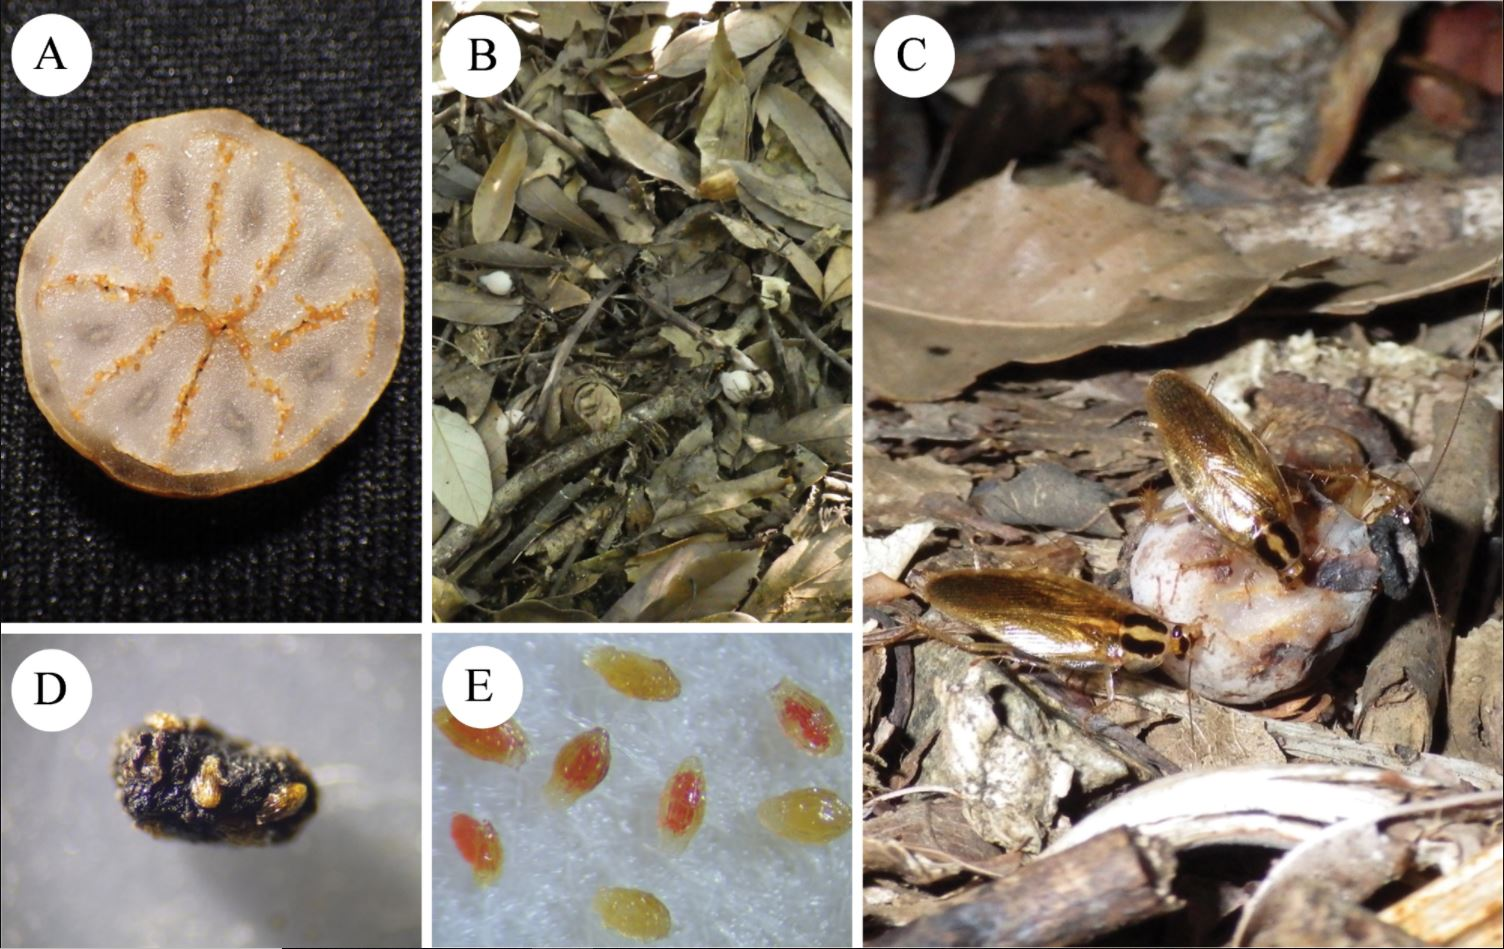 (A)  M. humile  fruit showing many minute seeds embedded in the less juicy pulp. (B) Fallen fruits. (C)  Blattella nipponica  feeding on the fruit. (D) Cockroach poop with seeds. (E) Stained cockroach-ingested seeds